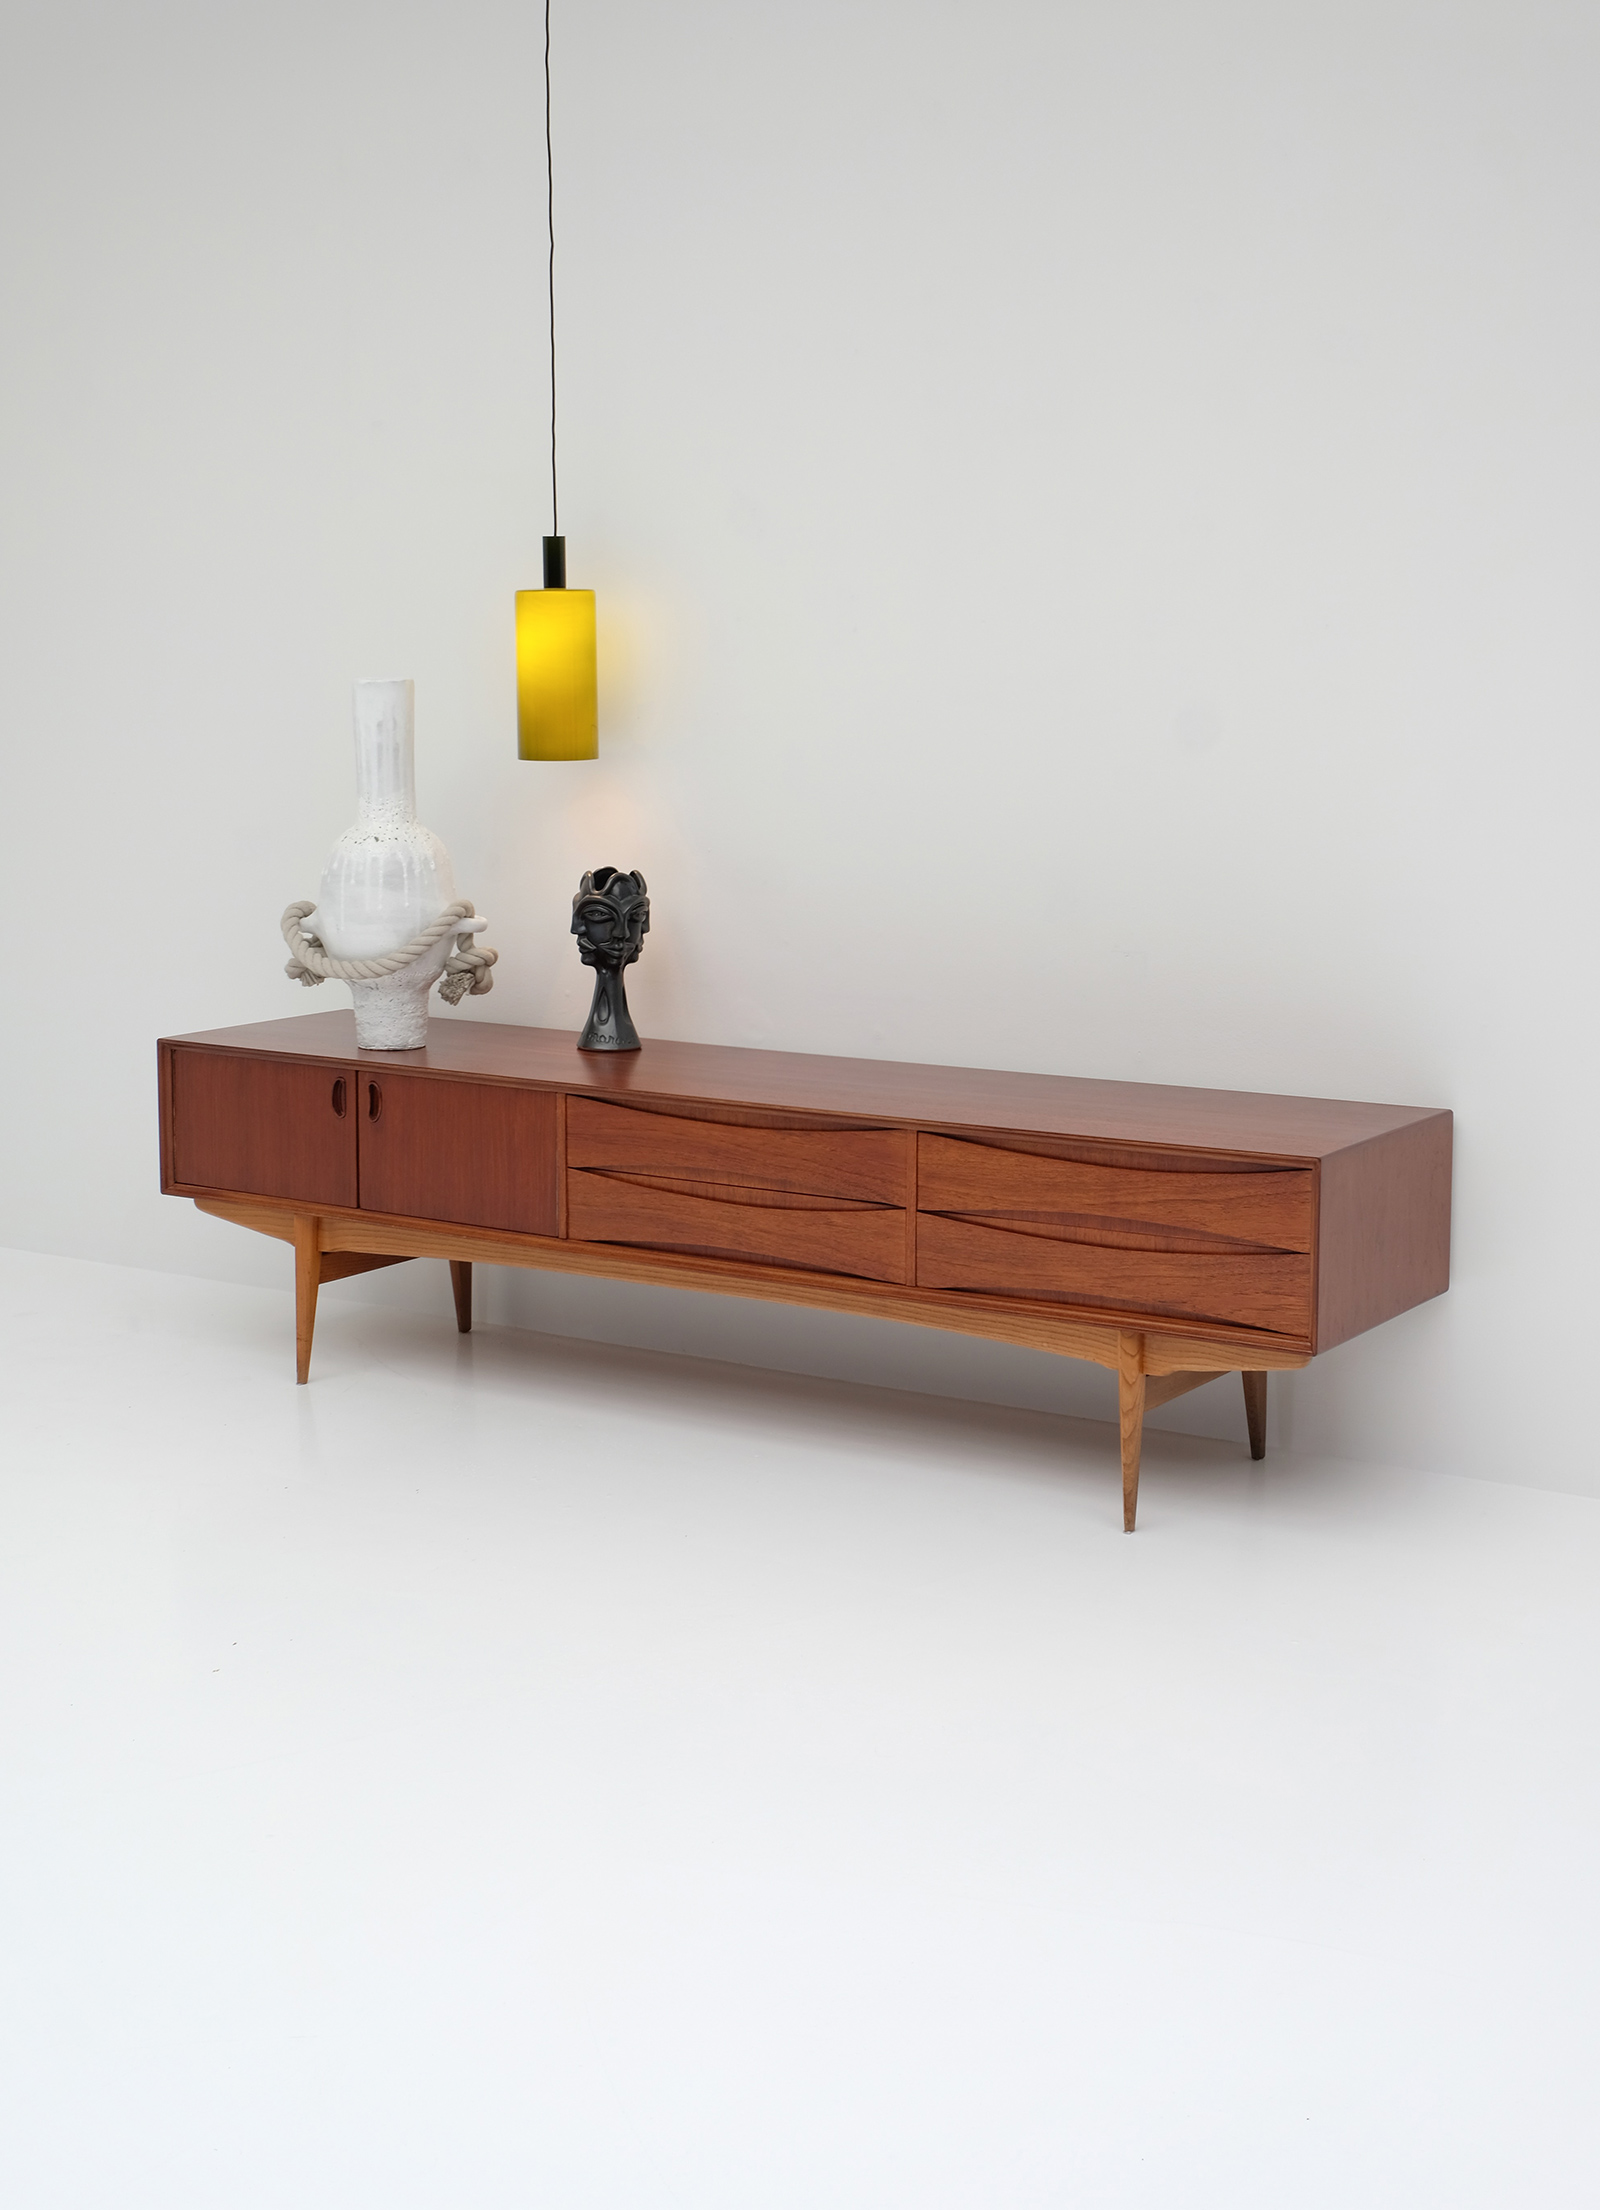 1958 V-form Paola Low Sideboard Oswald Vermaerckeimage 2